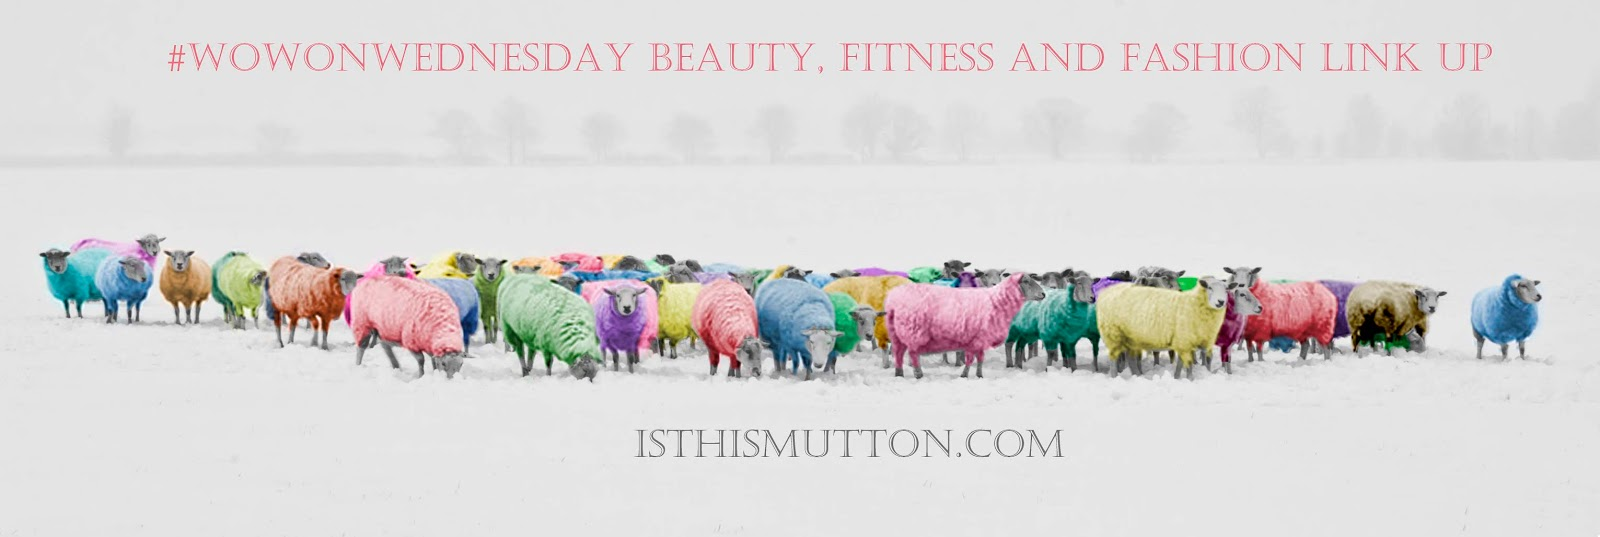 Colourful sheep logo of over-50s beauty and fashion blog Is This Mutton, promoting the #WowOnWednesday link up for beauty and fashion bloggers